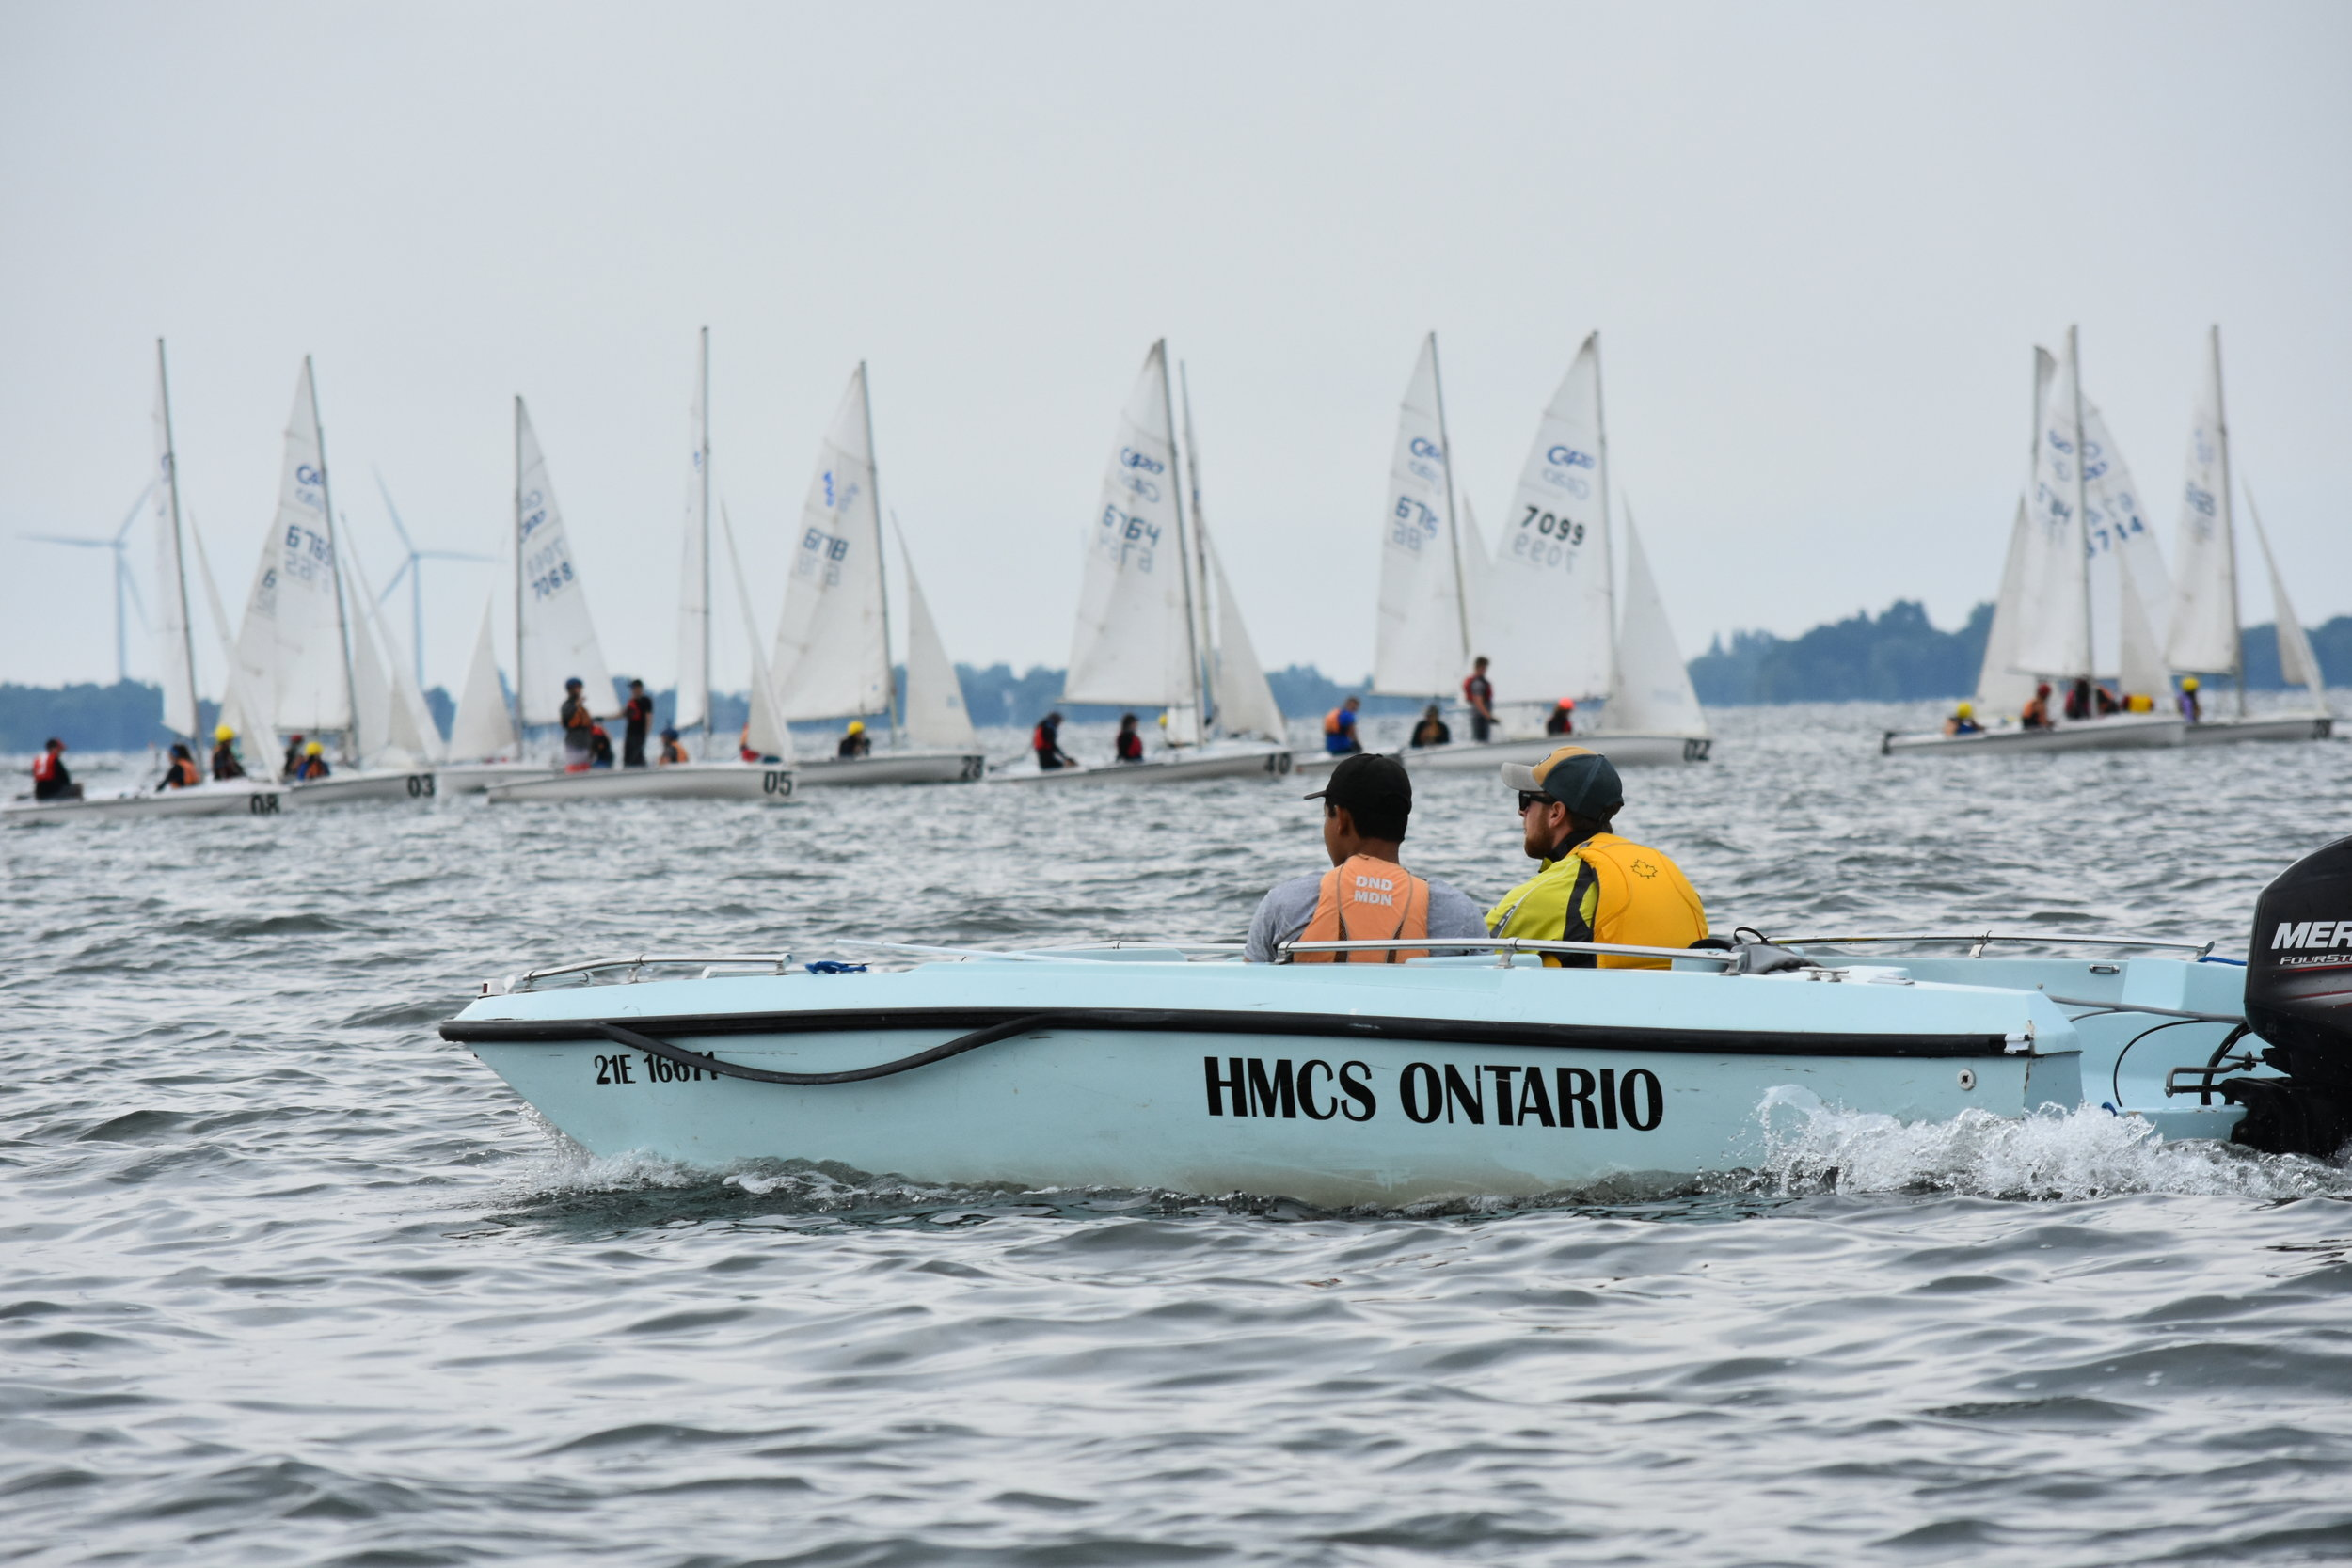 Although the Sea Cadet Program offers so much more than sailing, the highlight for many sea cadets is being chosen to compete in the national regatta at CORK (Canadian Olympic Regatta Kingston) on Lake Ontario. (rcsu central, national cadet and junior ranger support group)